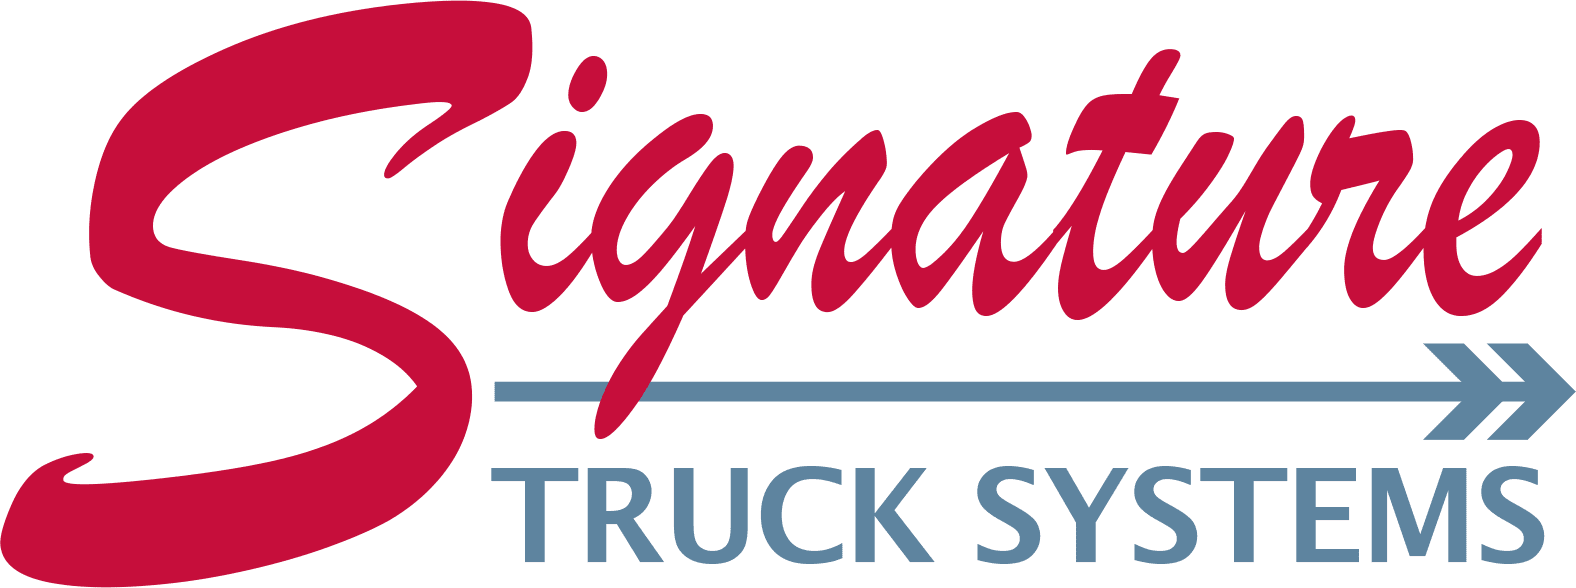 Signature Truck Systems